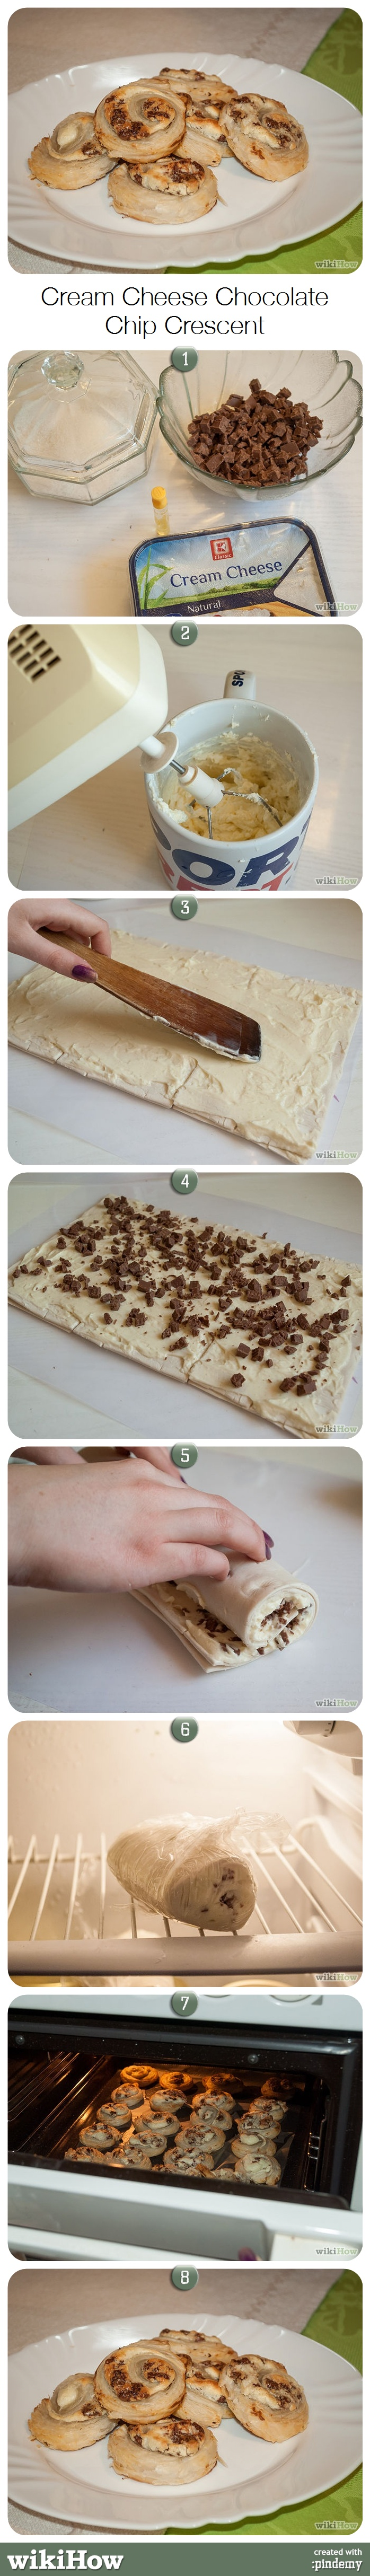 How To Make Easy Cream Cheese Chocolate Chip Cookies With Crescent Rolls Chocolate Chip Cookies Cheese Chips Cream Cheese Crescent Rolls